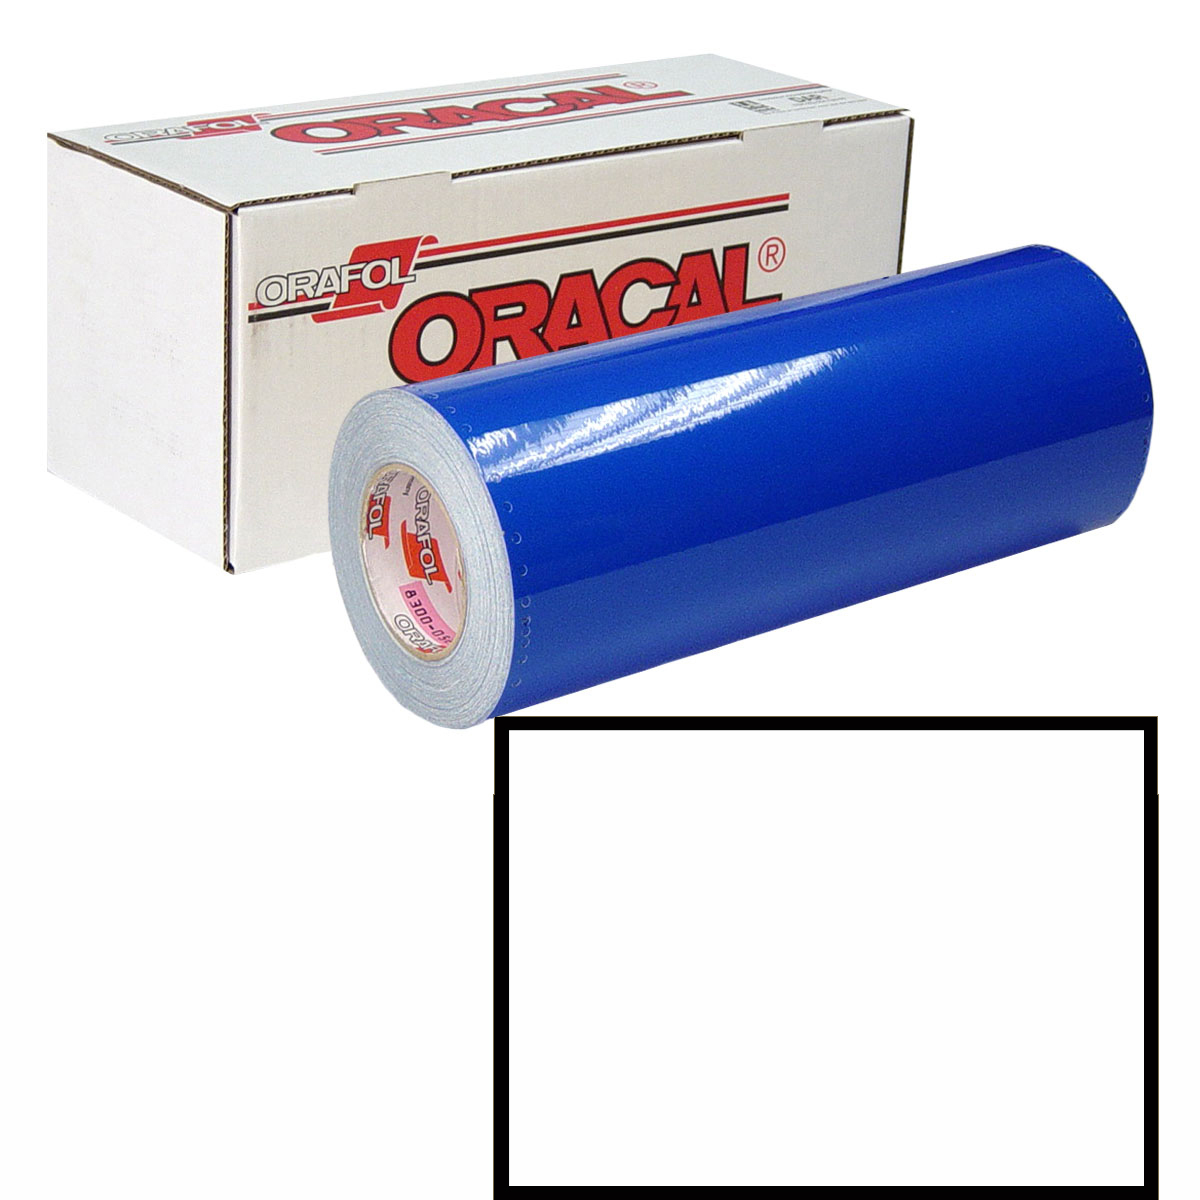 ORACAL 631 Unp 24In X 10Yd 000 Transparent